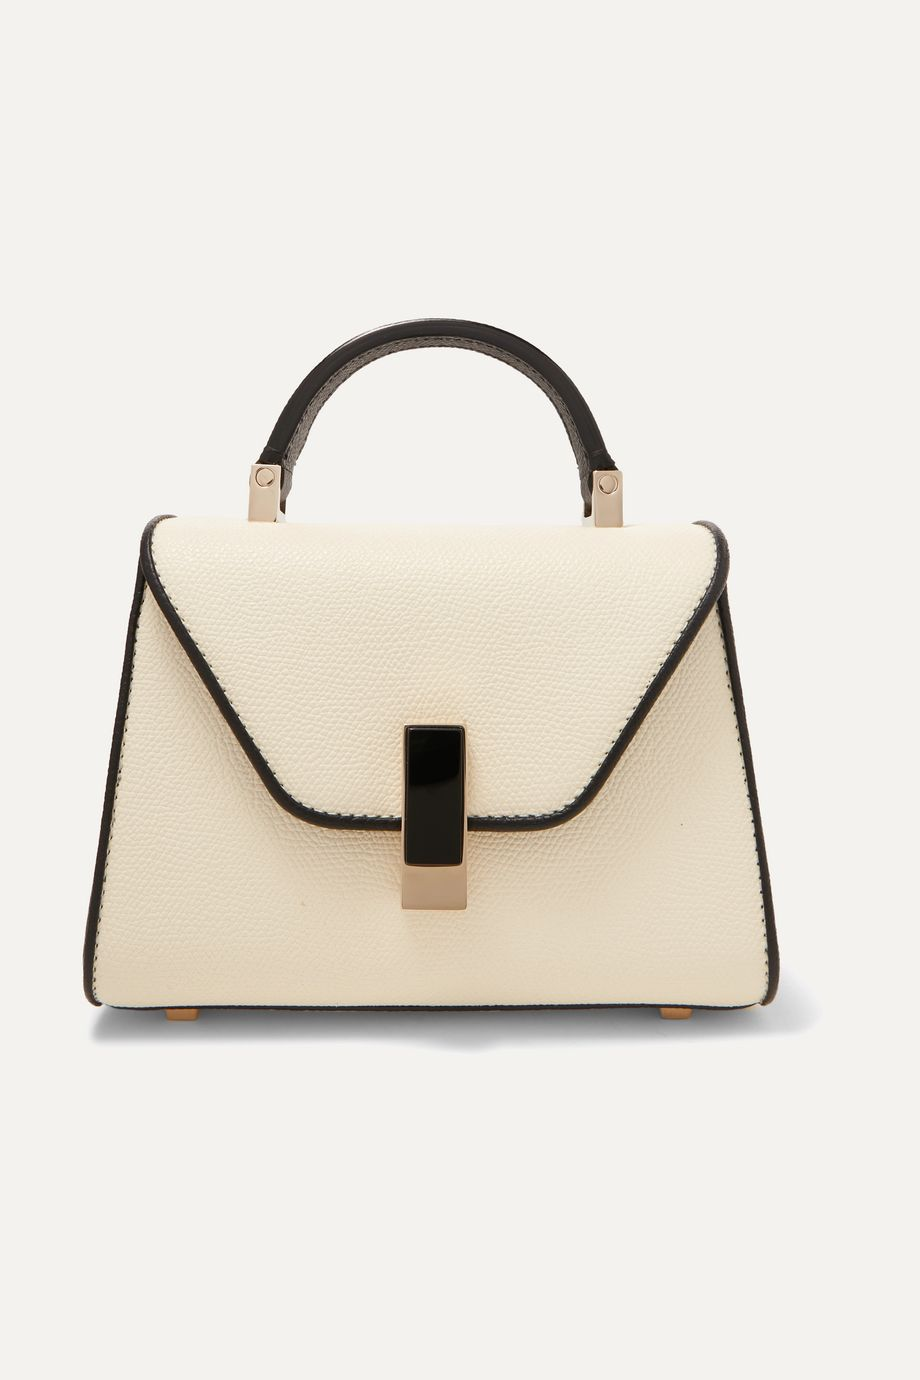 Valextra Iside micro two-tone textured-leather shoulder bag